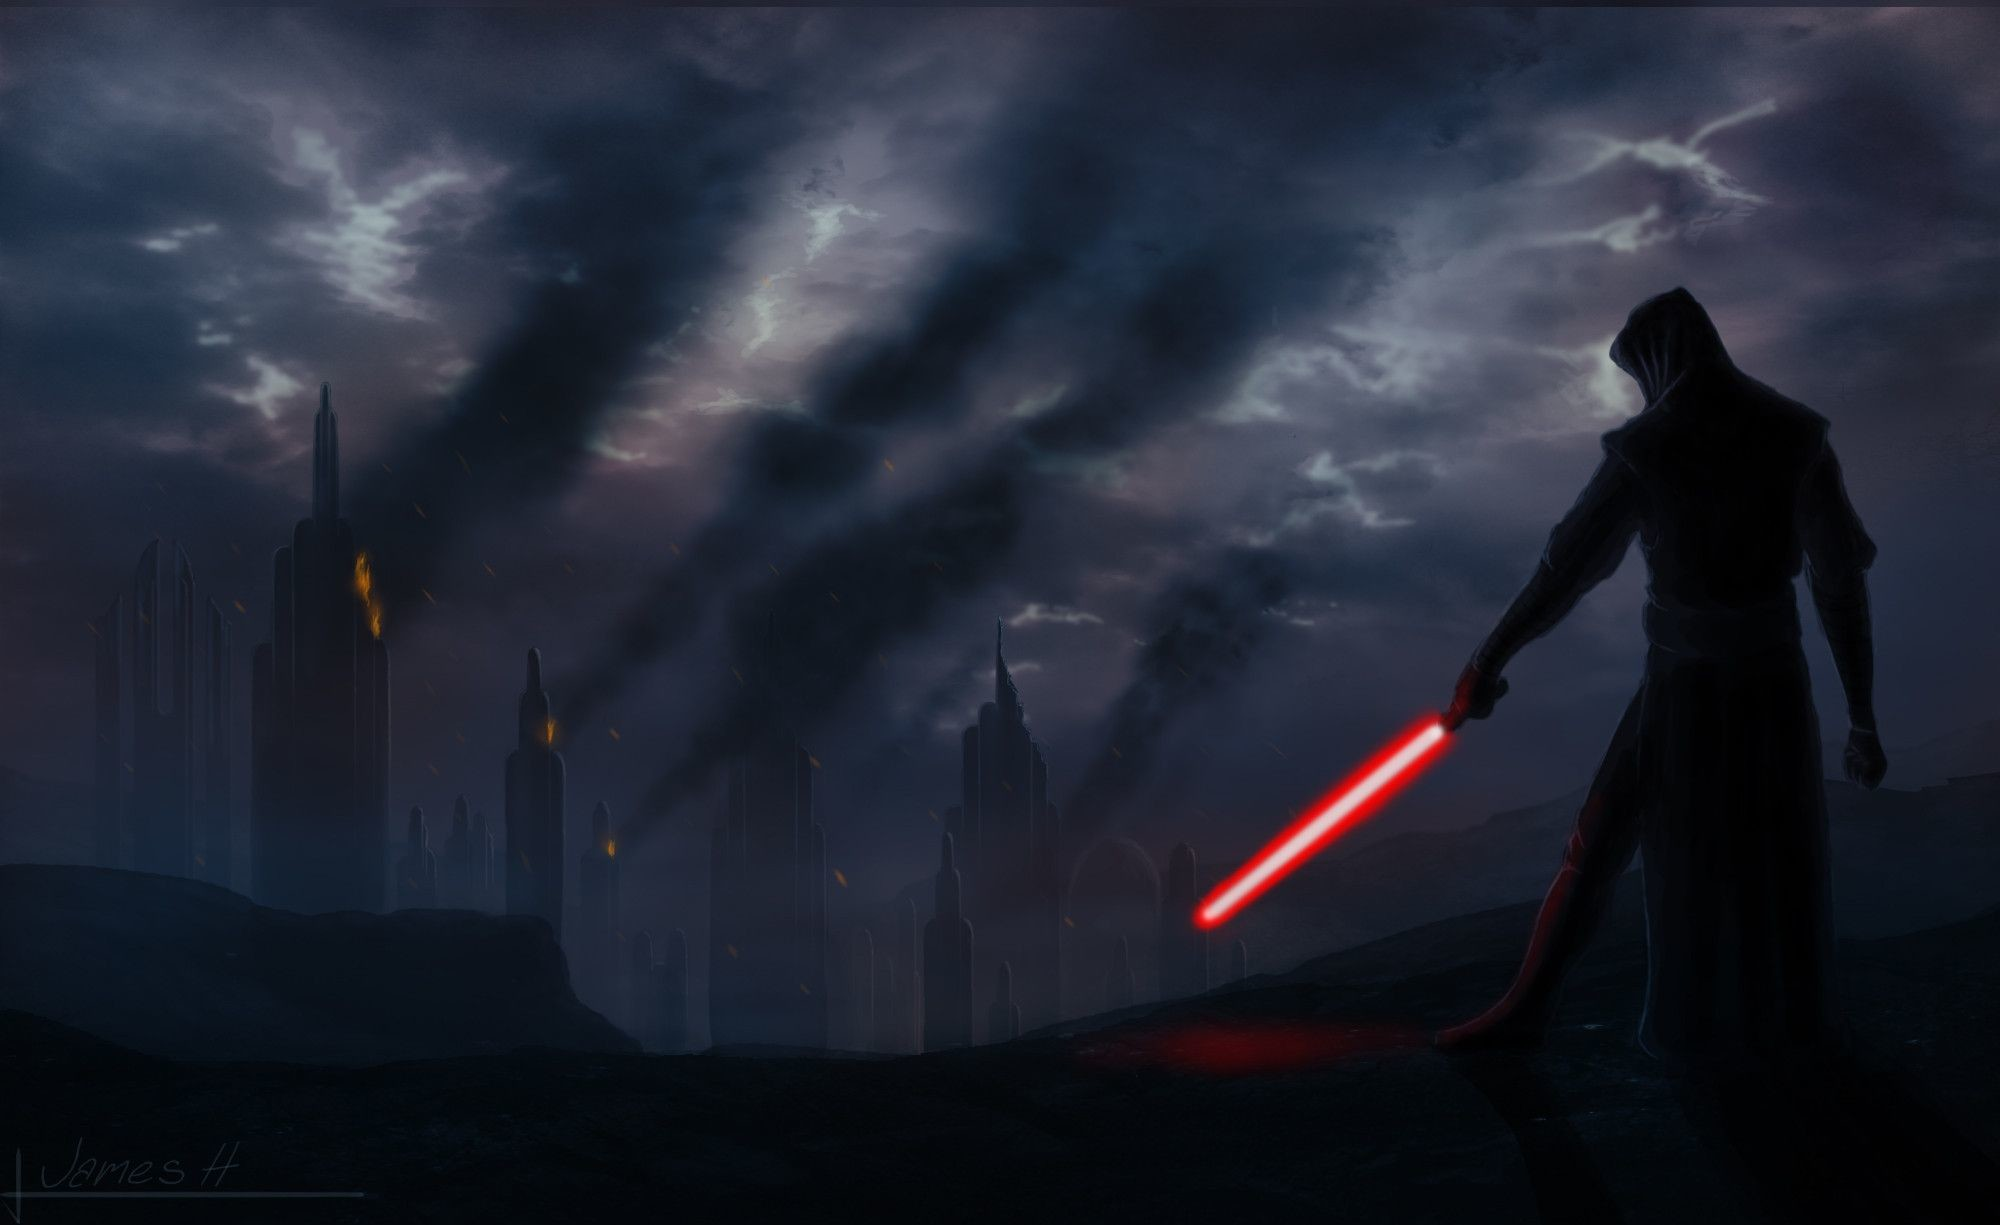 … download star wars sith wallpapers images for free wallpaper …